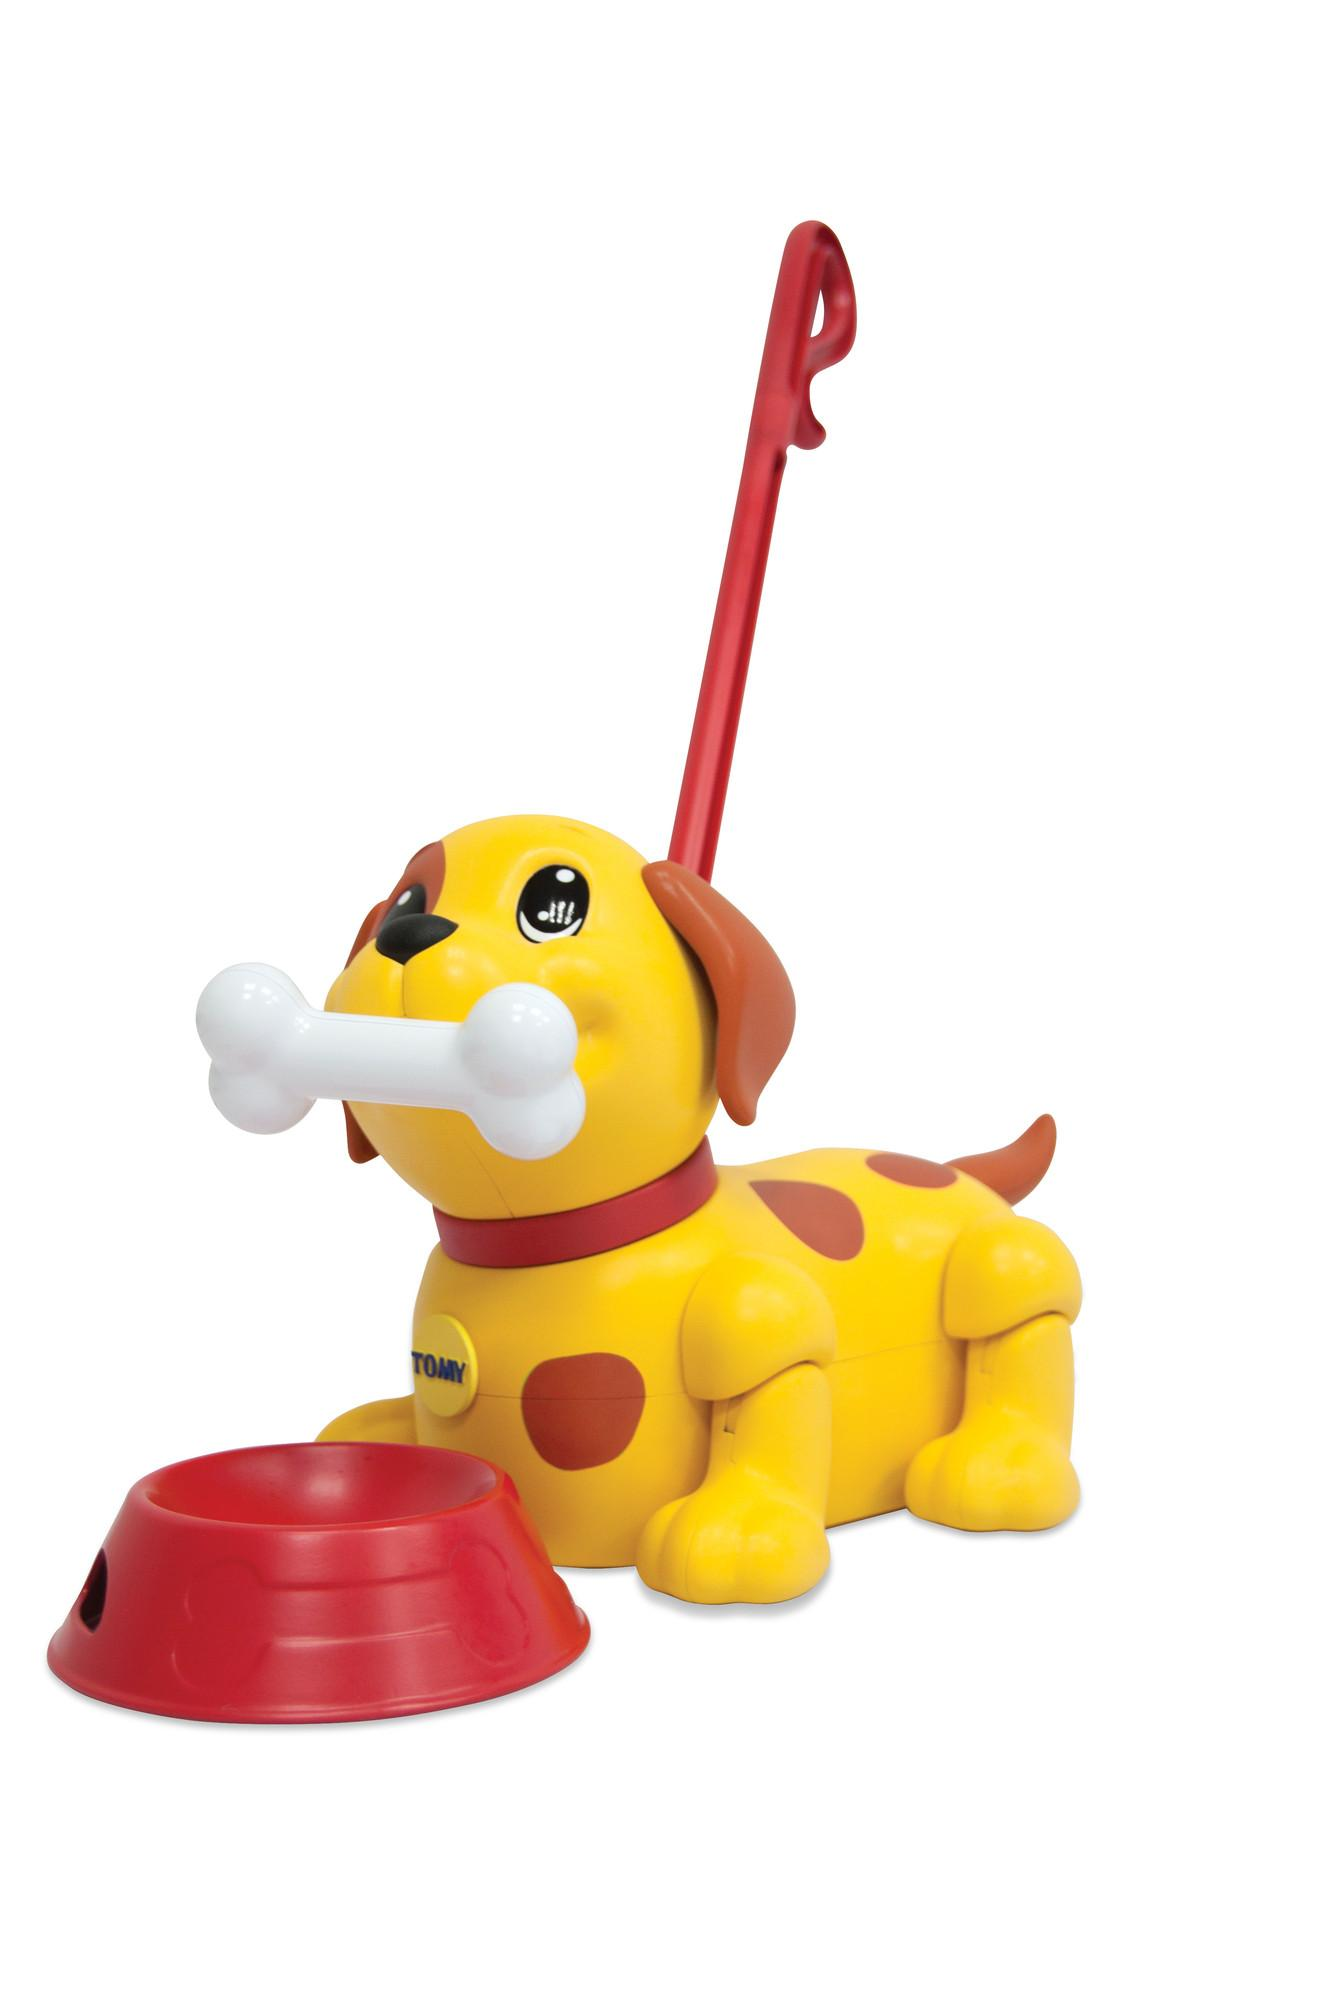 TOMY Kids Push Pull Me Puppy Toy Amazon Toys & Games